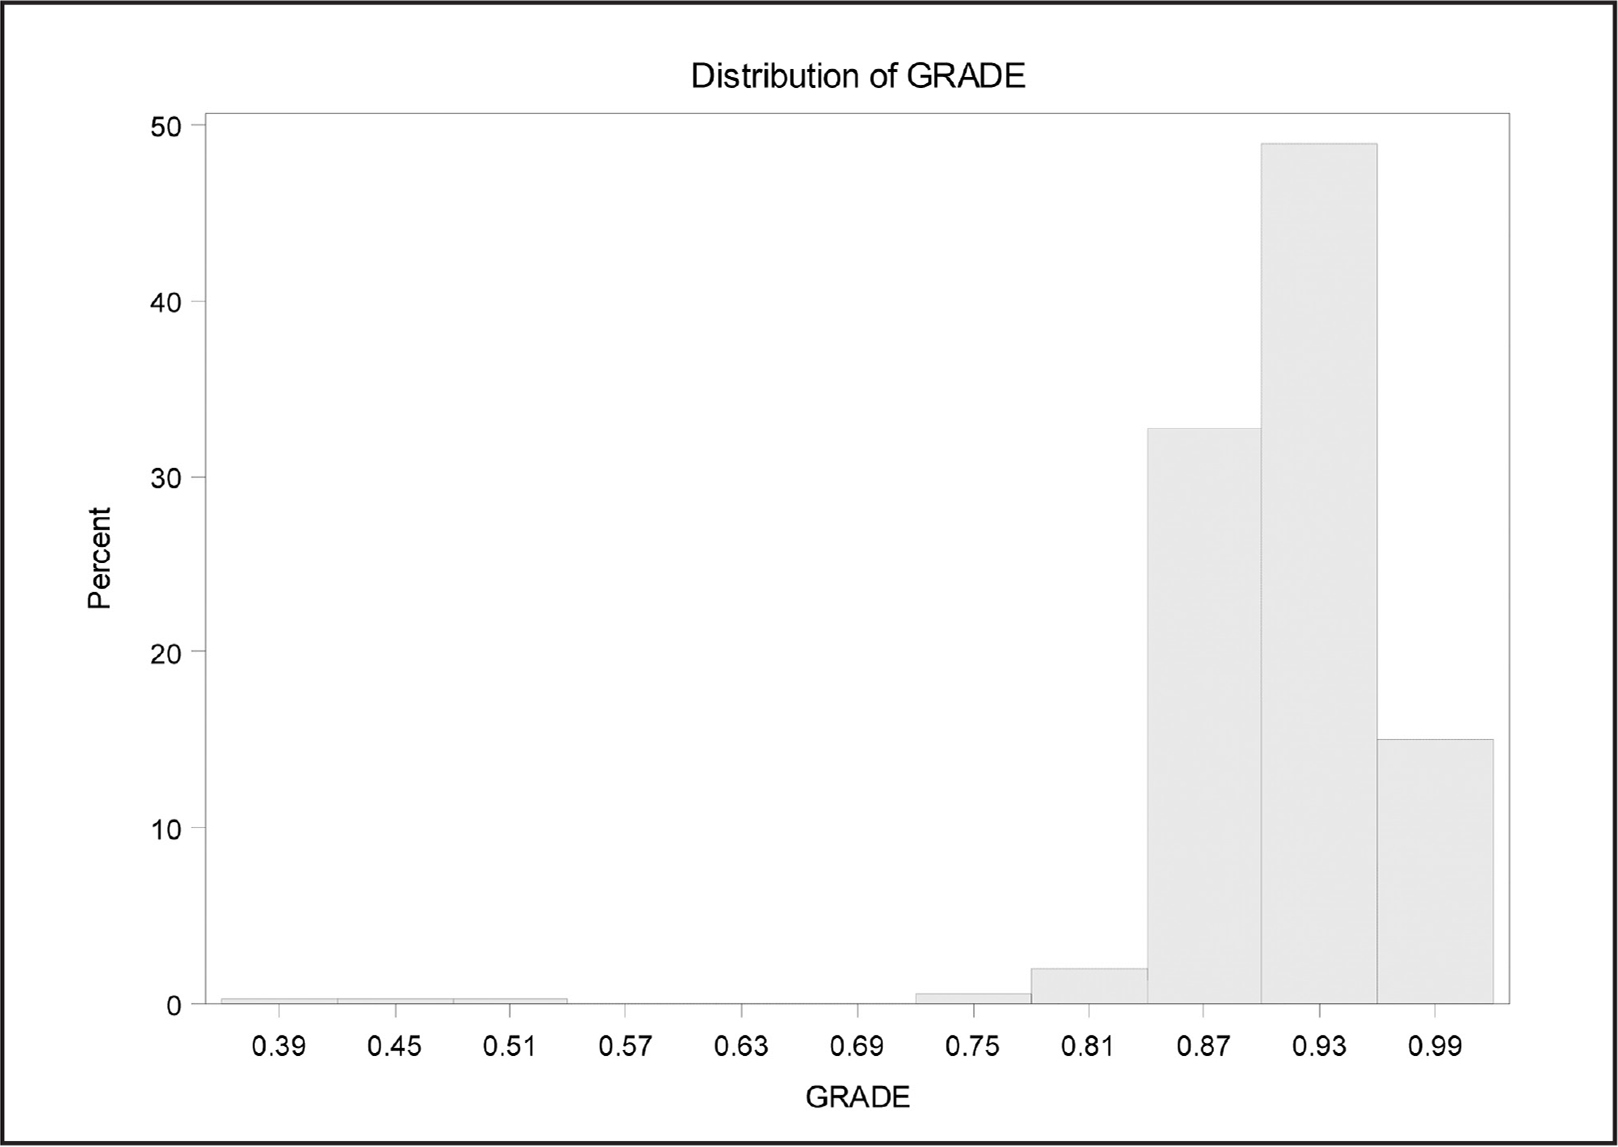 Histogram of distribution of the outcome variable of grade.